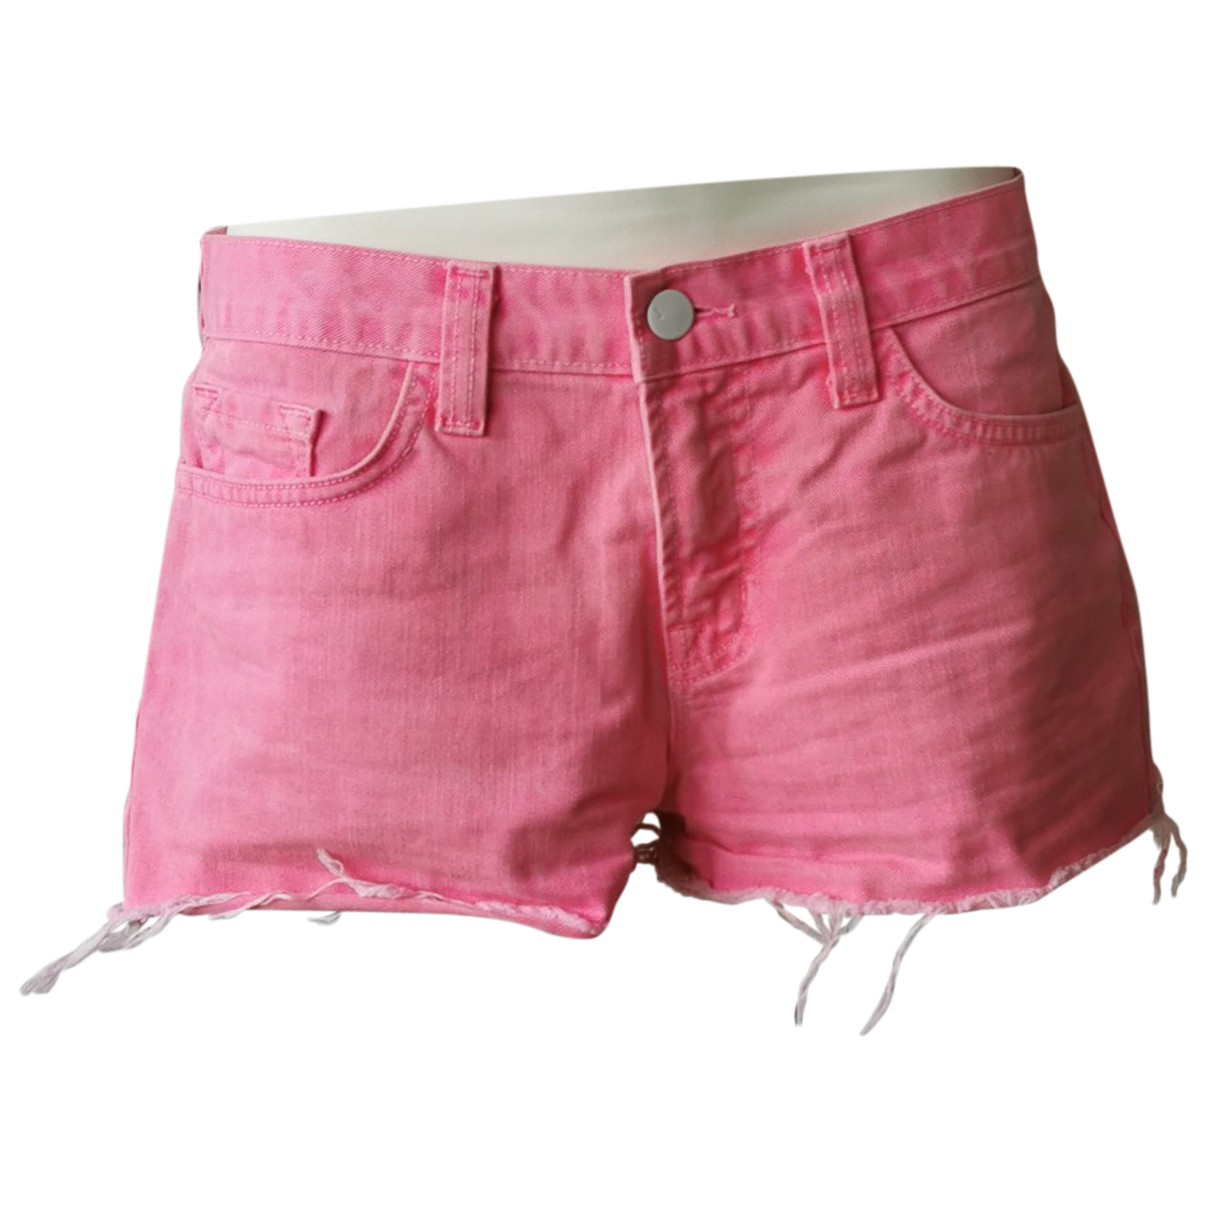 J Brand N Pink Cotton Shorts for Women S International